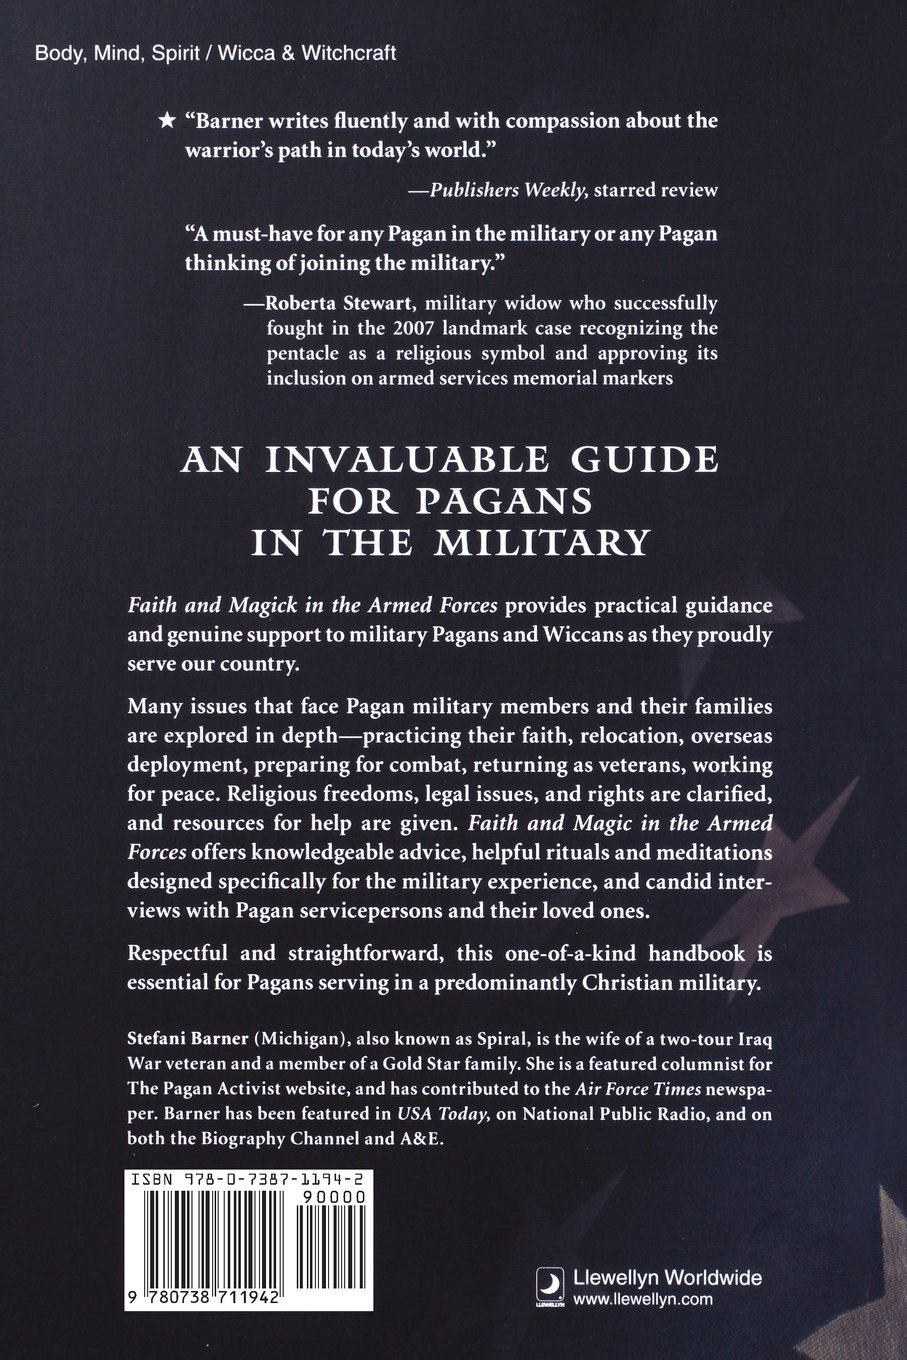 Faith And Magick In The Armed Forces A Handbook For Pagans In The